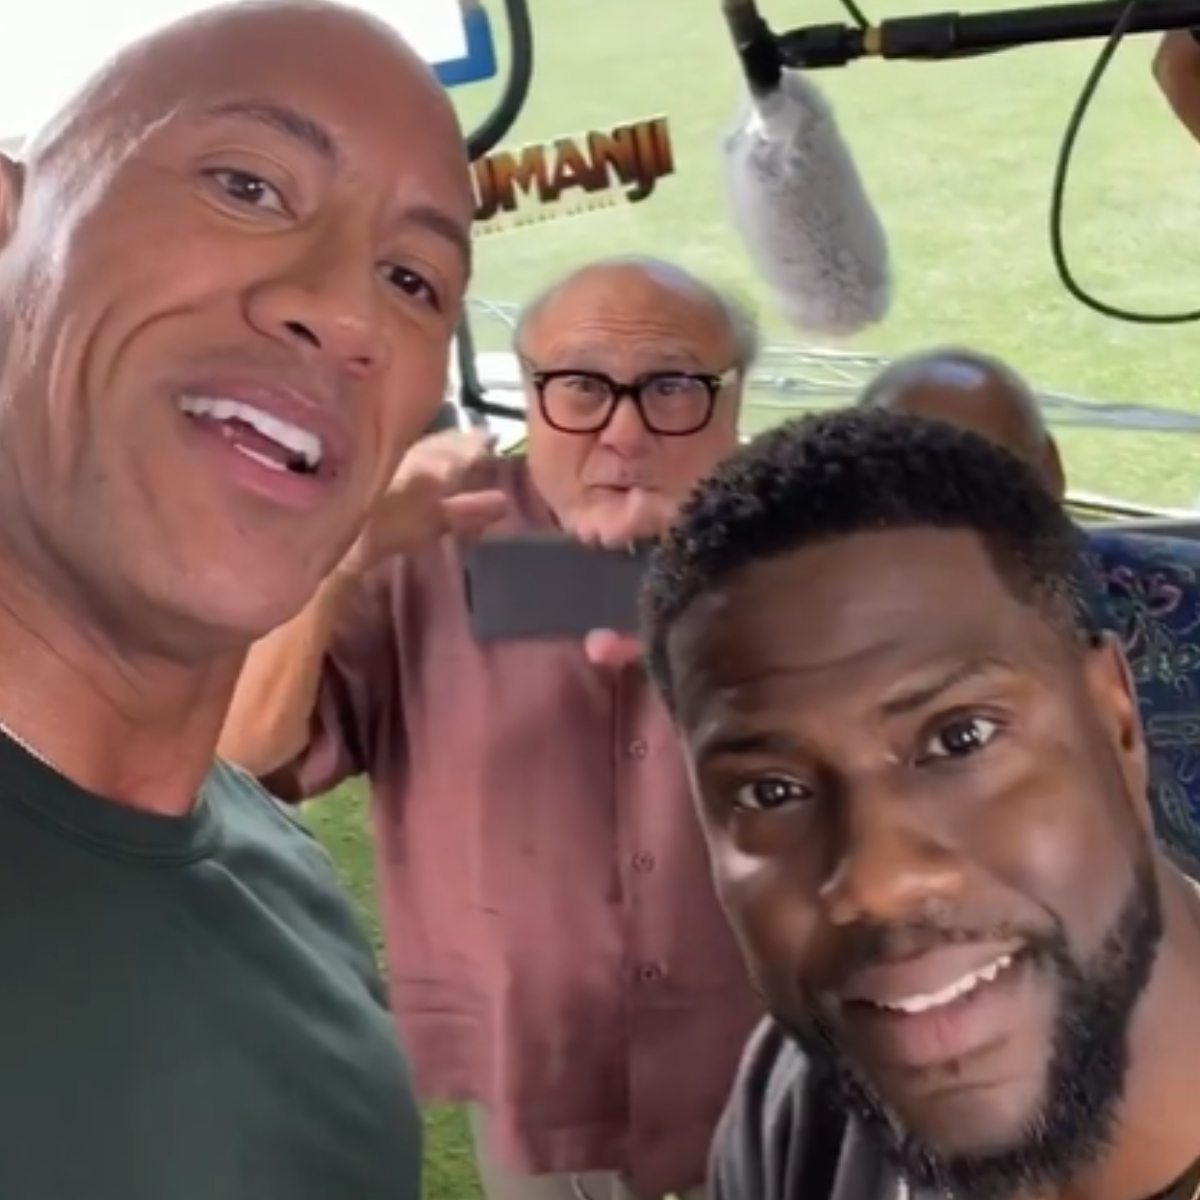 WATCH: Jumanji: The Next Level stars The Rock, Kevin Hart are back at it with their hilarious banter in Mexico